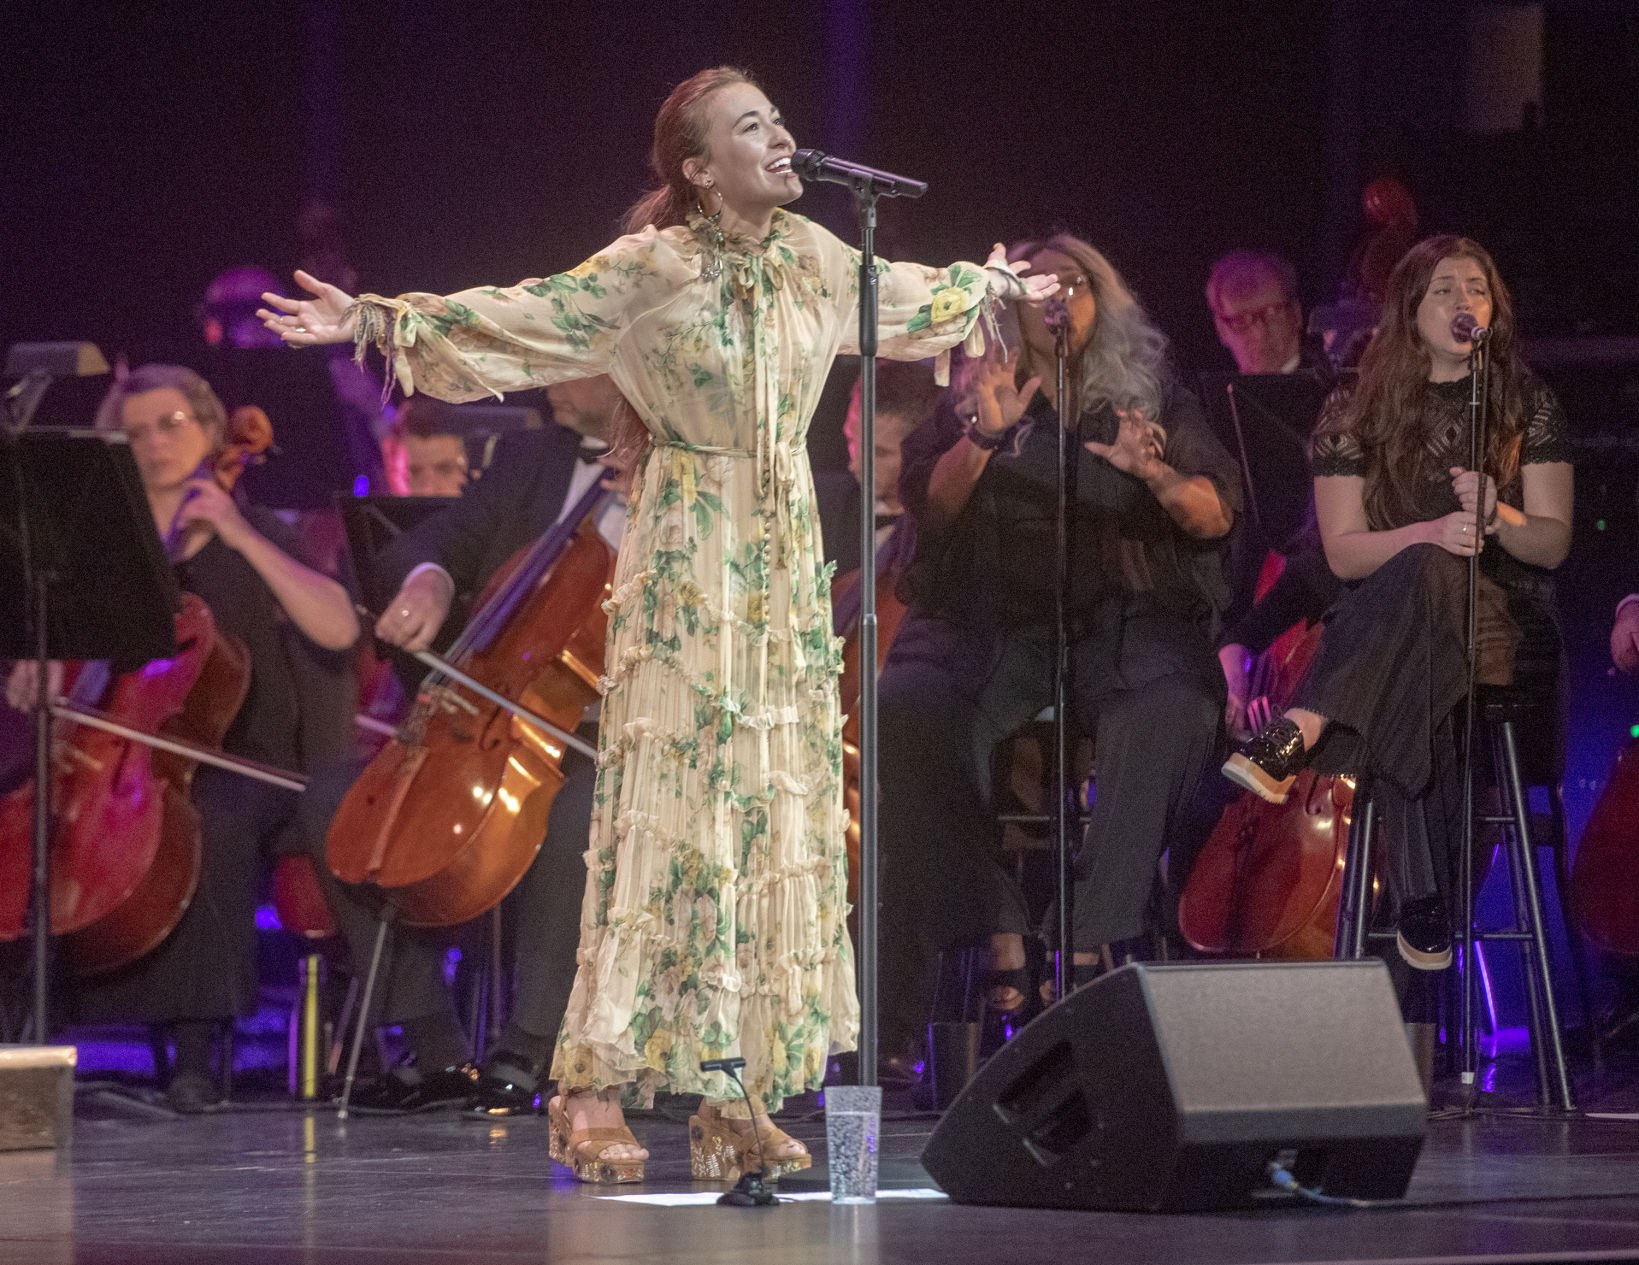 Lauren Daigle to visit the Cajundome in 2020; tickets to Lafayette concert on sale Friday